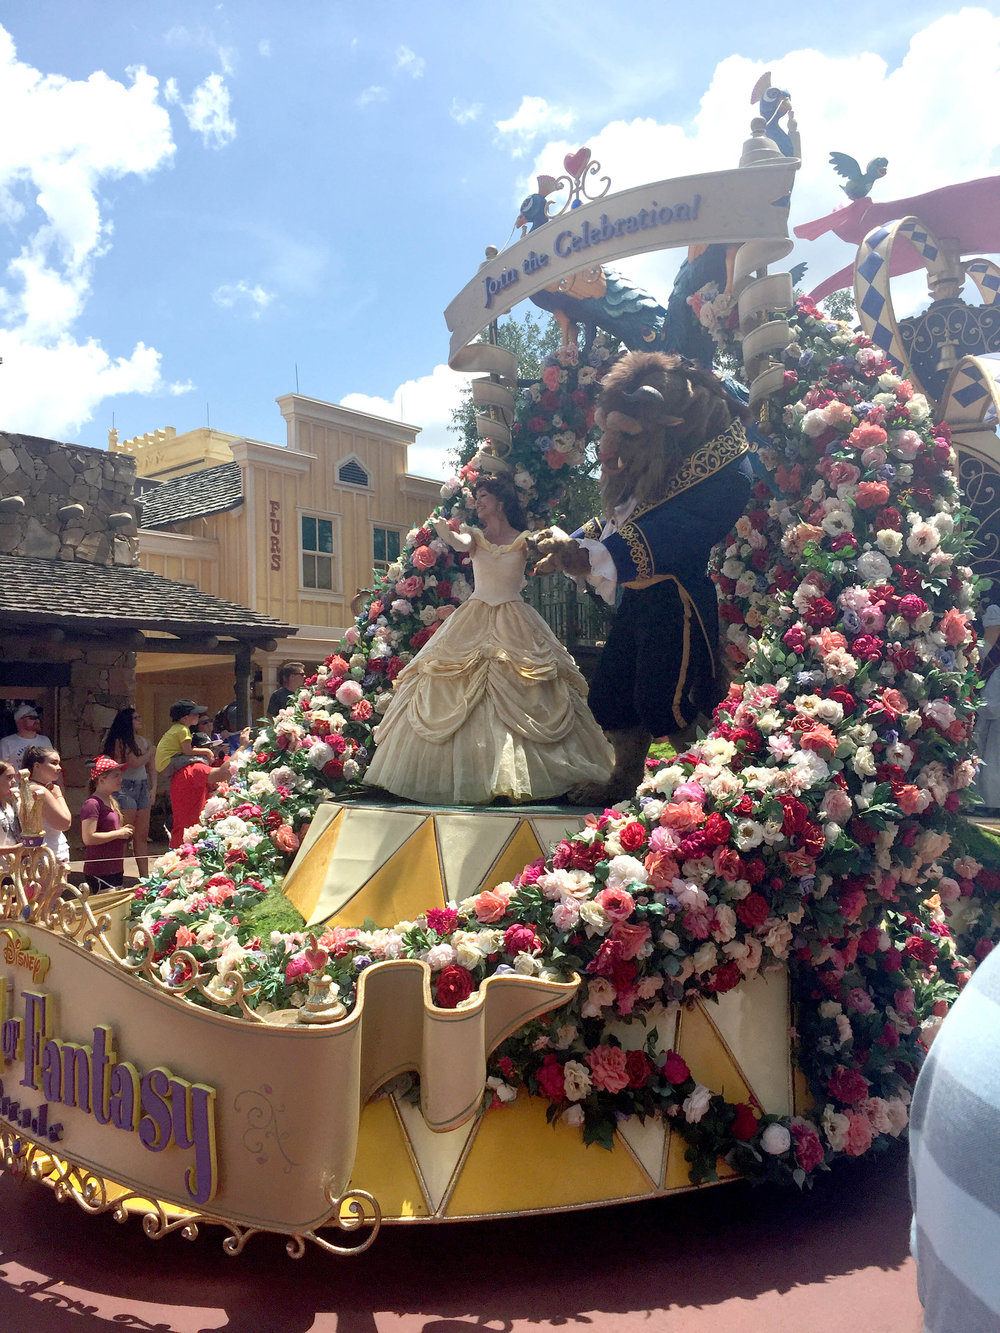 I love that the princess float is covered in multicolored roses!